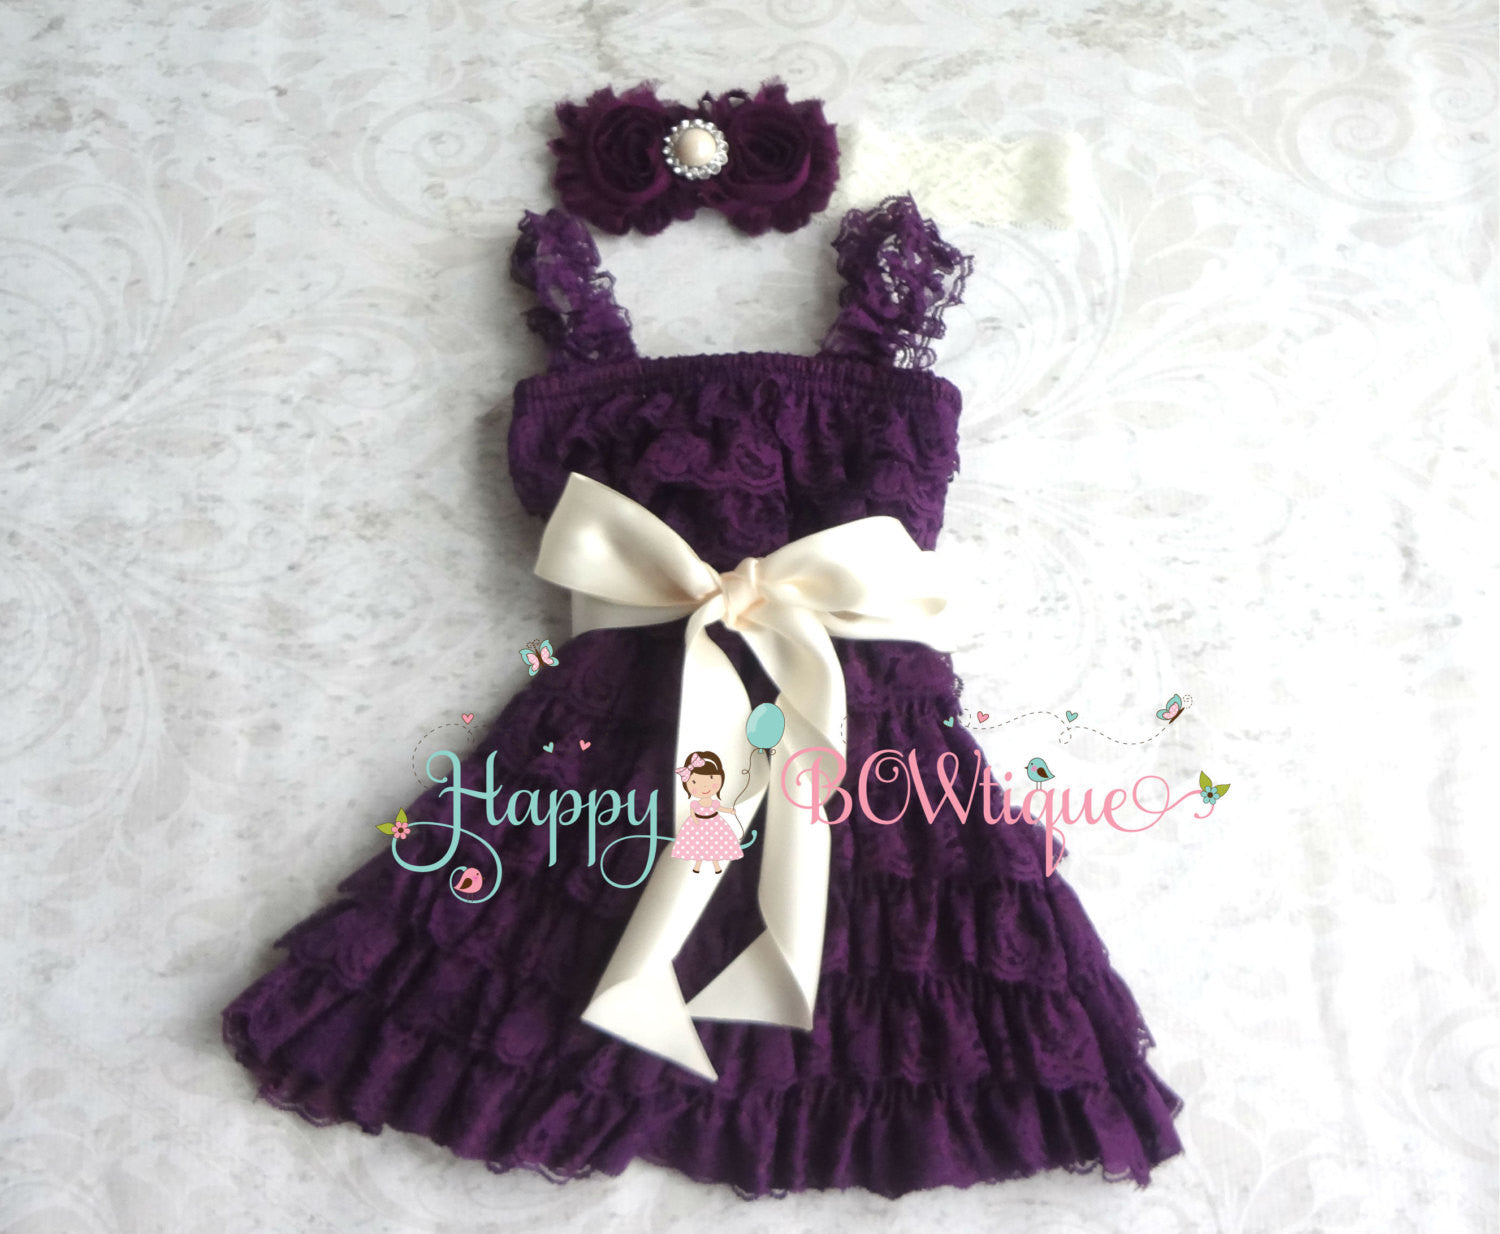 Baby Girl's Ivory Vintage Plum Lace Dress set - Happy BOWtique - children's clothing, Baby Girl clothing